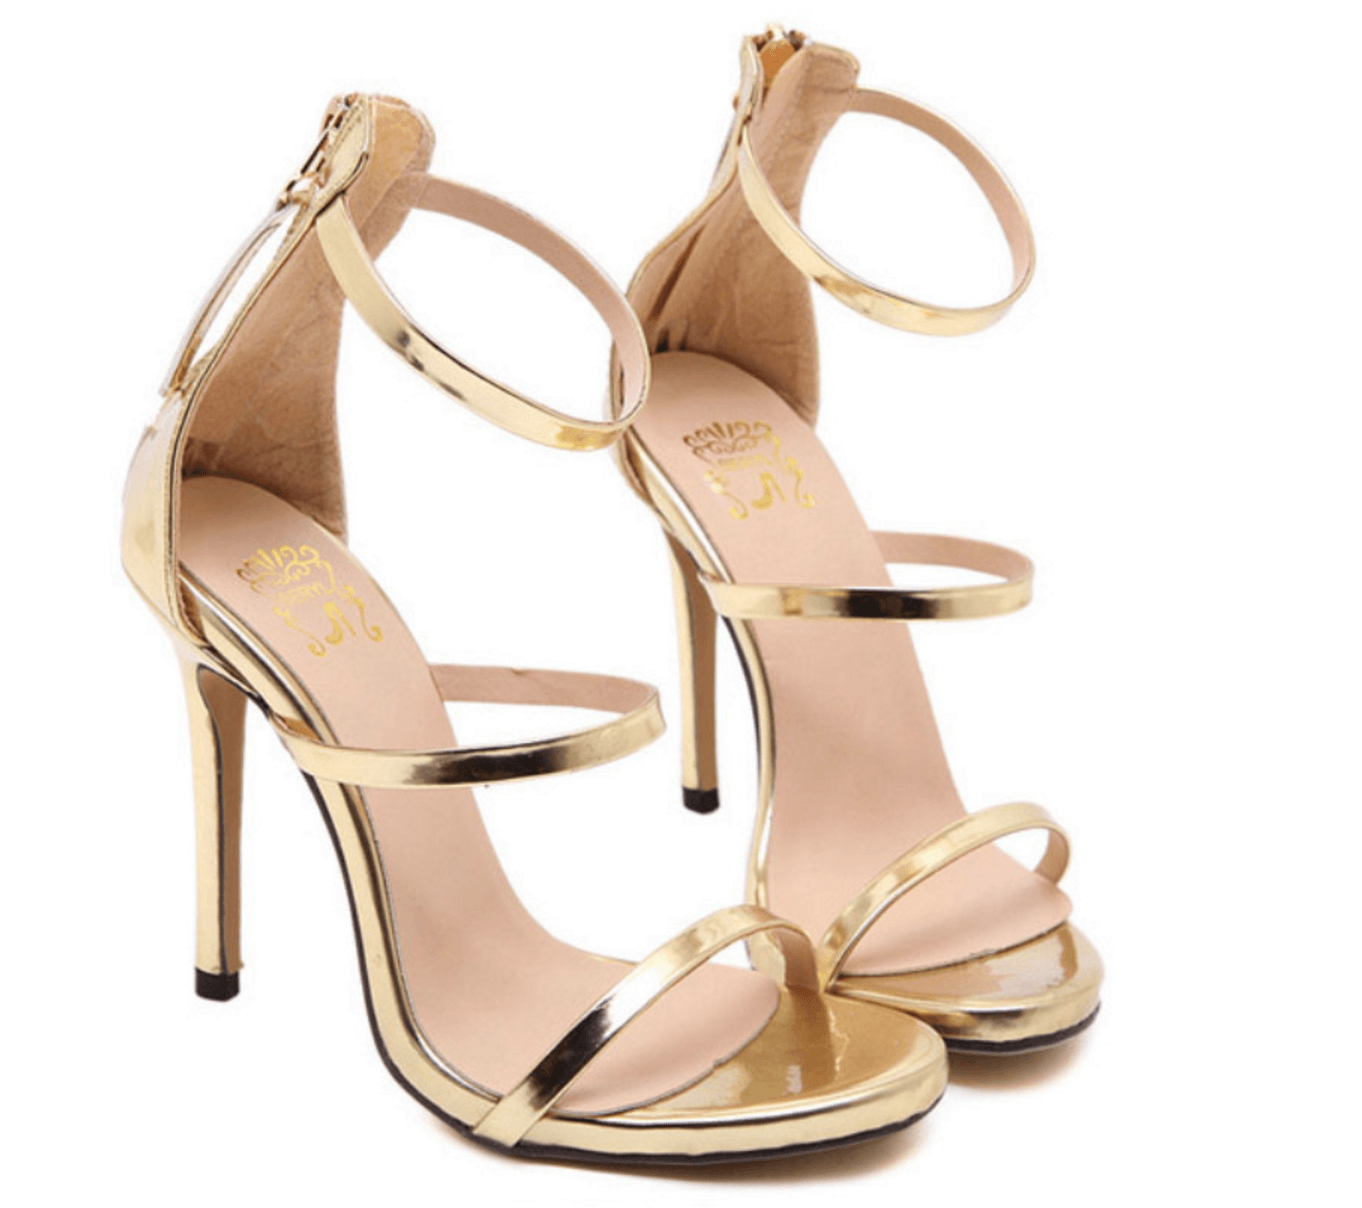 Gold color patent leather high heel sandals strappy ankle-wrap style